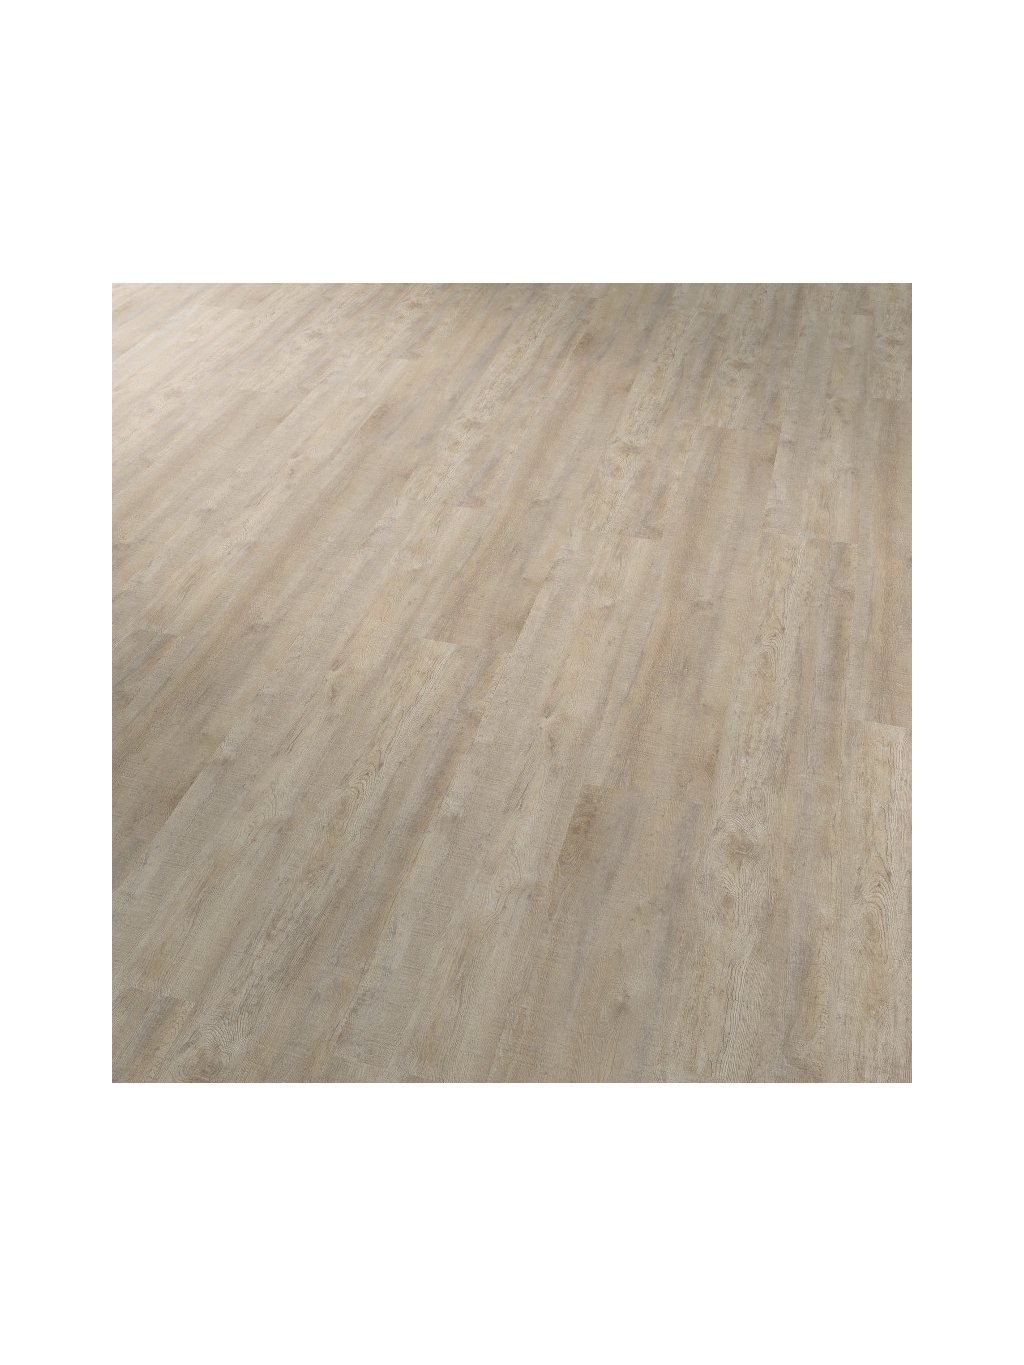 Conceptline 30103 Driftwood Blond